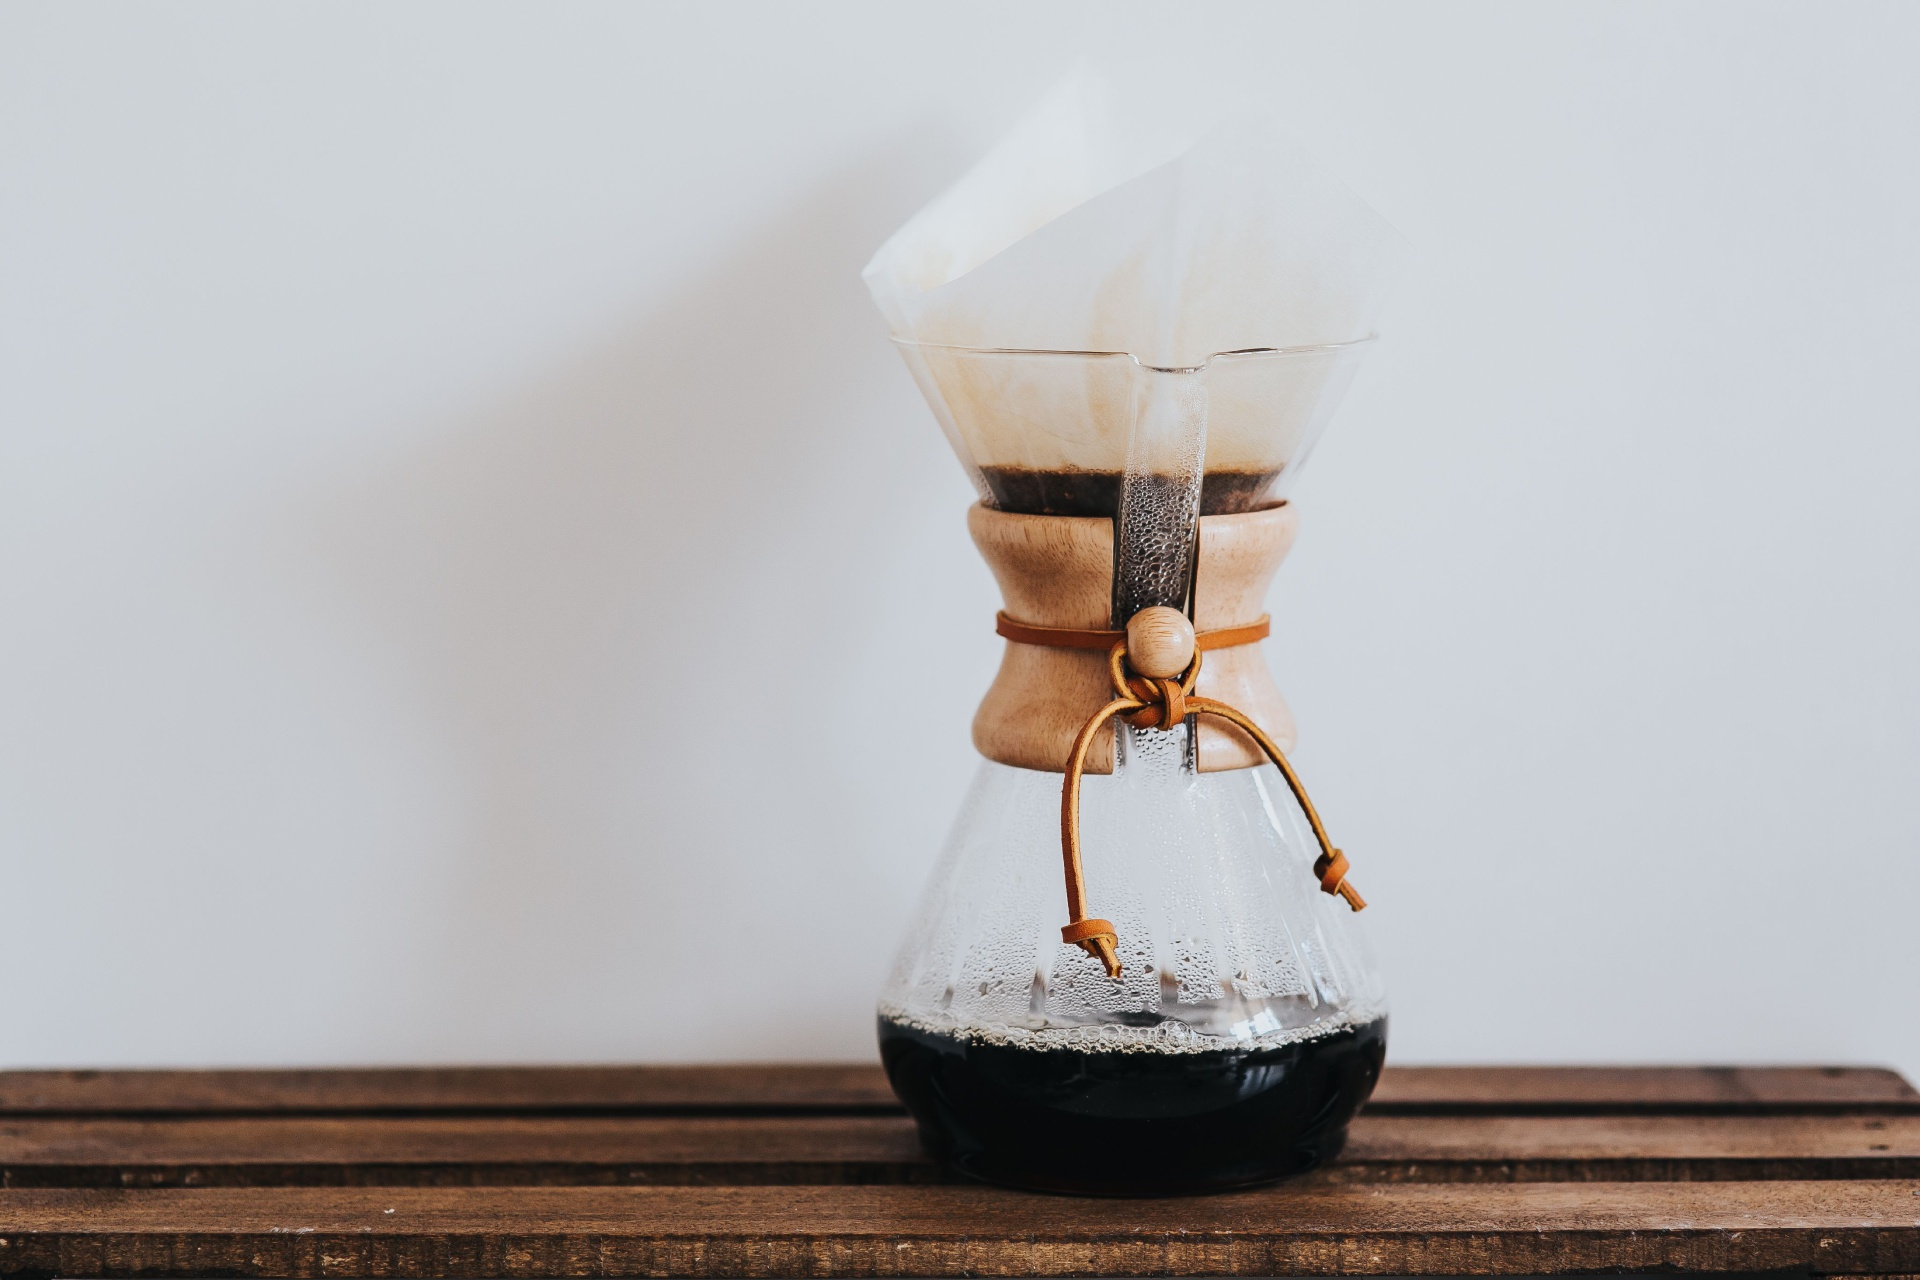 http://www.addressrealestate.com/media/images/blogs/24/2/b_kaboompics-pouring-hot-water-in-chemex.jpg